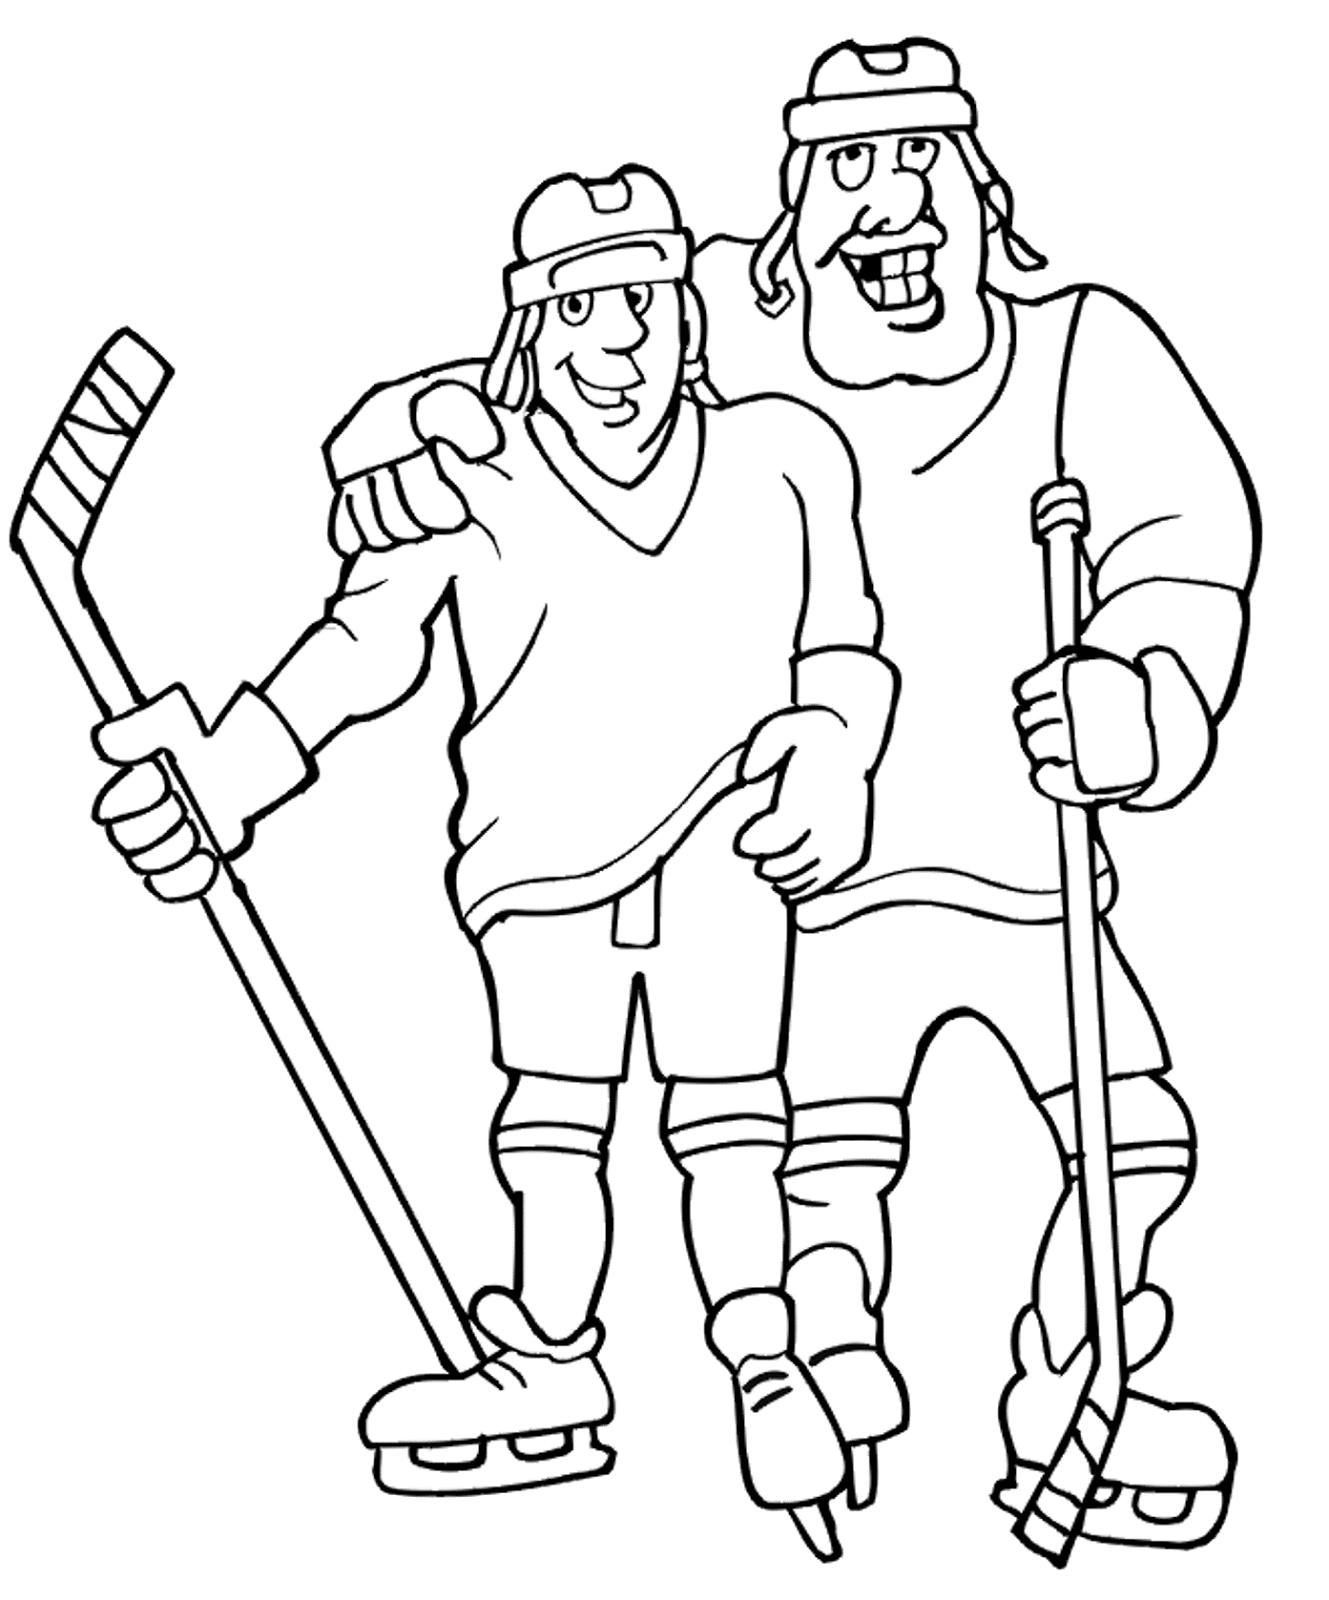 types of sports coloring pages for kids